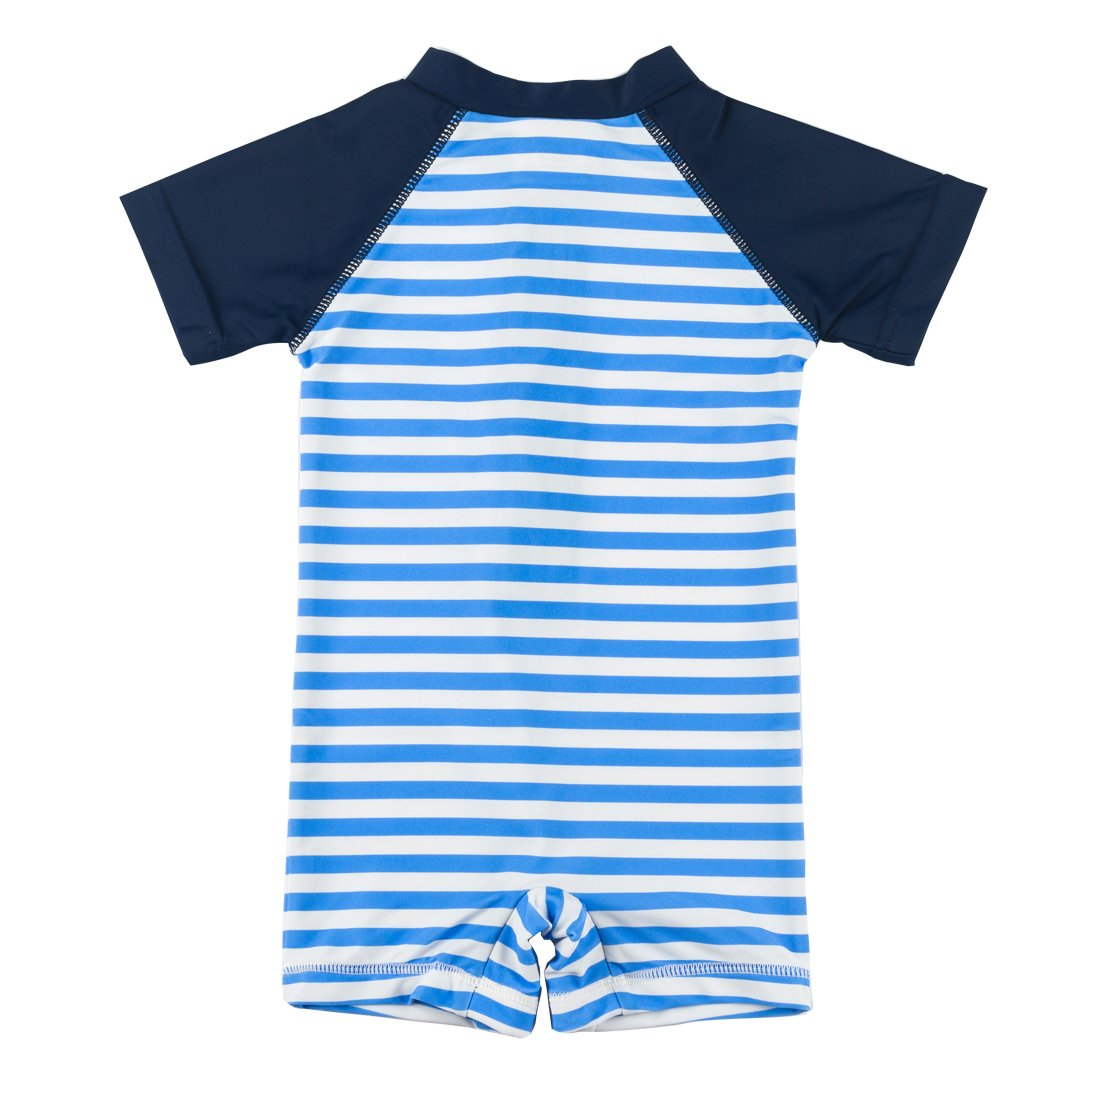 ccb0171ad9a Amazon.com  Kids Boy Girl Swimsuit One Piece Surfing Suits Beach Swimwear Rash  Guard  Clothing